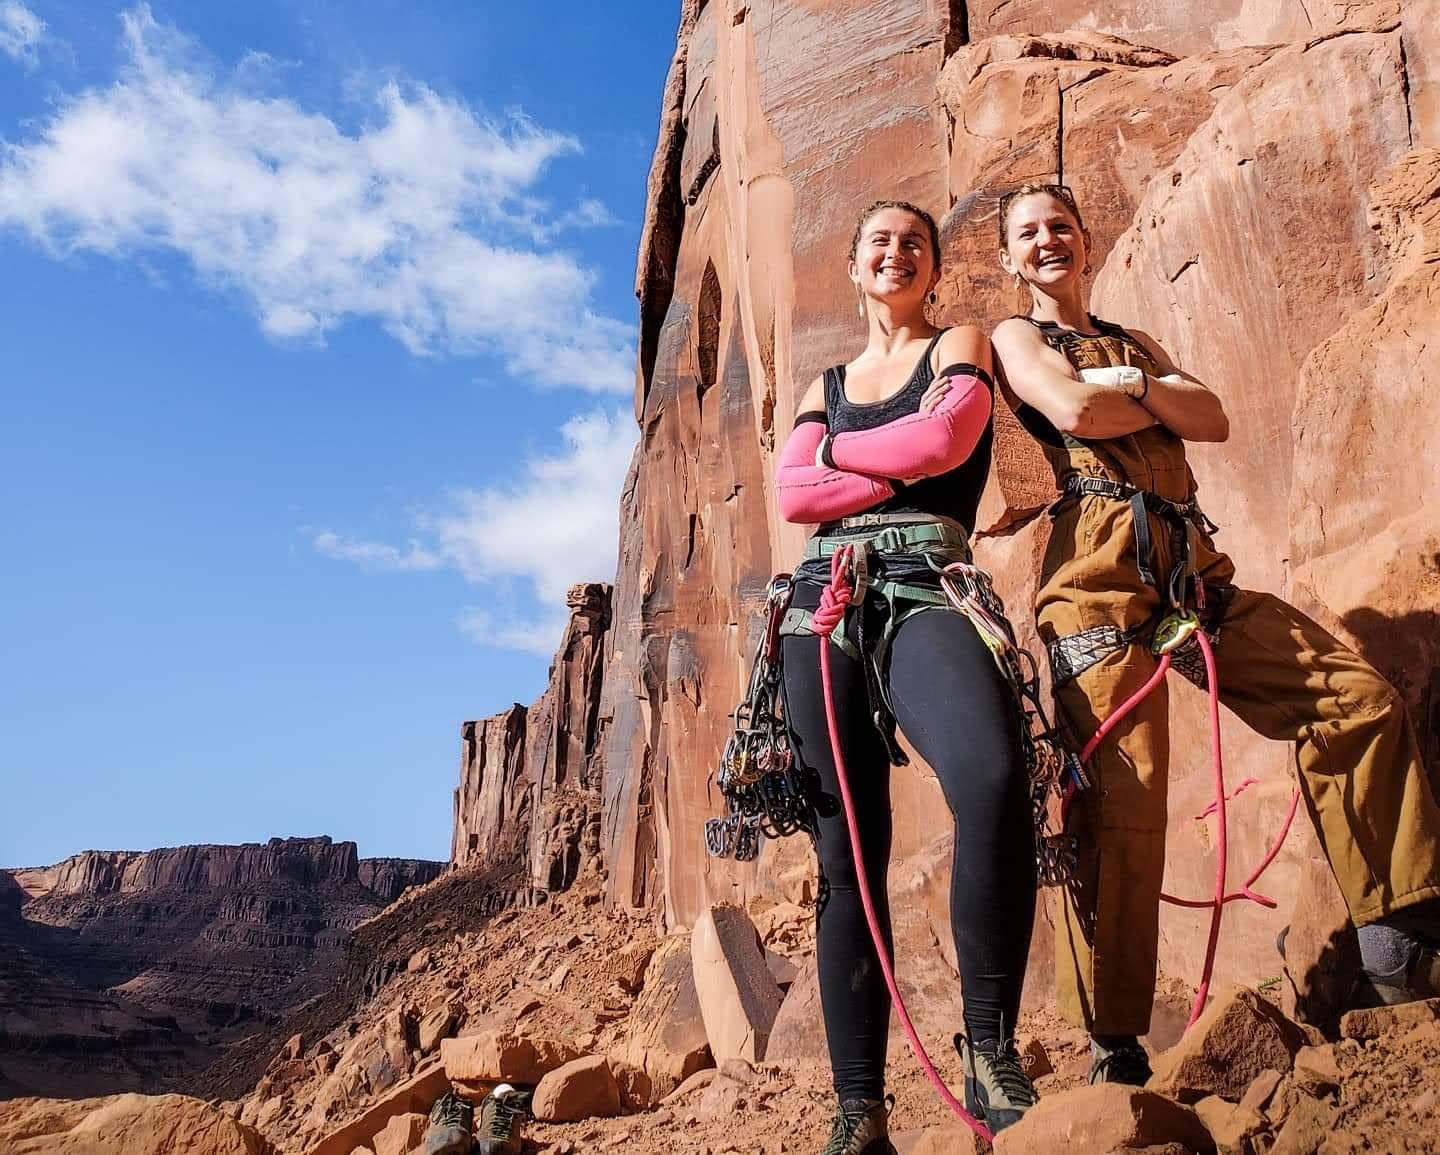 5 Classic Sunny Climbing Walls In Moab to Hit When it's Cold Outside